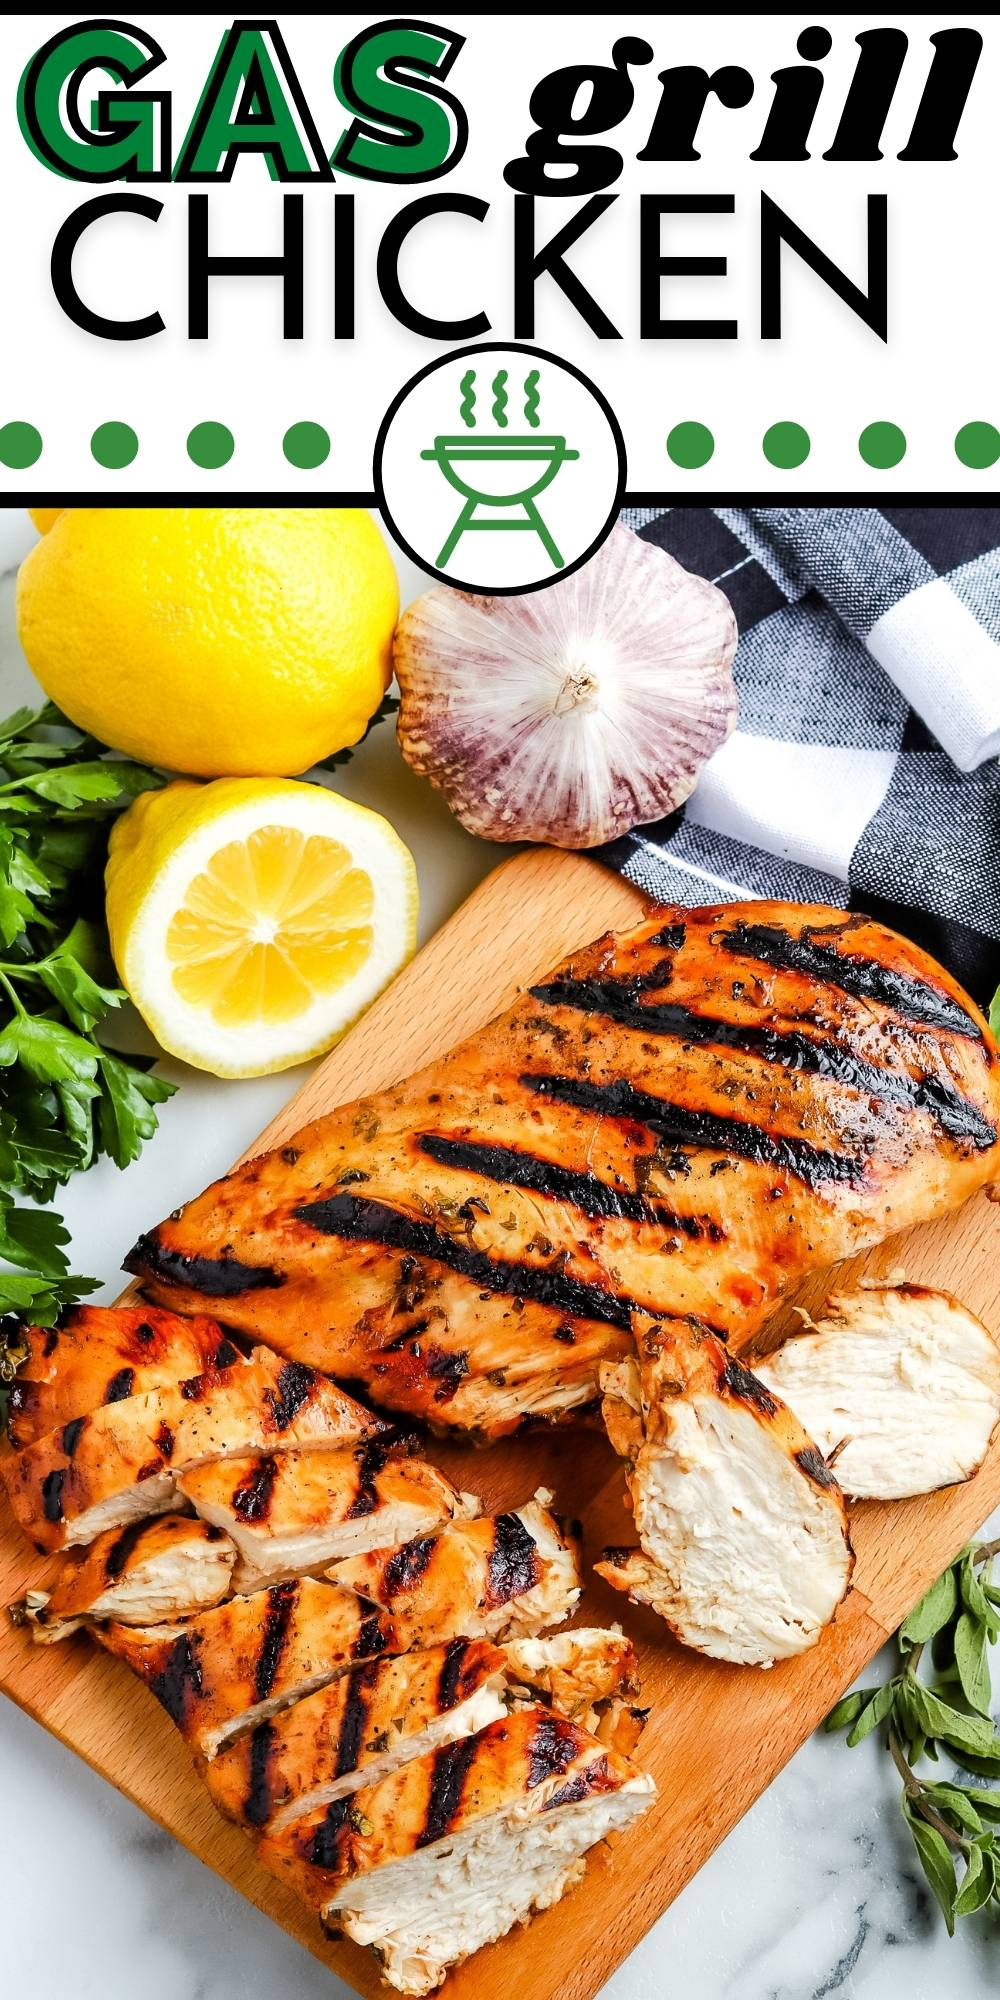 This Gas Grill Chicken Breast recipe is easy to make and a weeknight staple during the summer. The boneless chicken breasts cook up juicy and succulent. via @foodfolksandfun